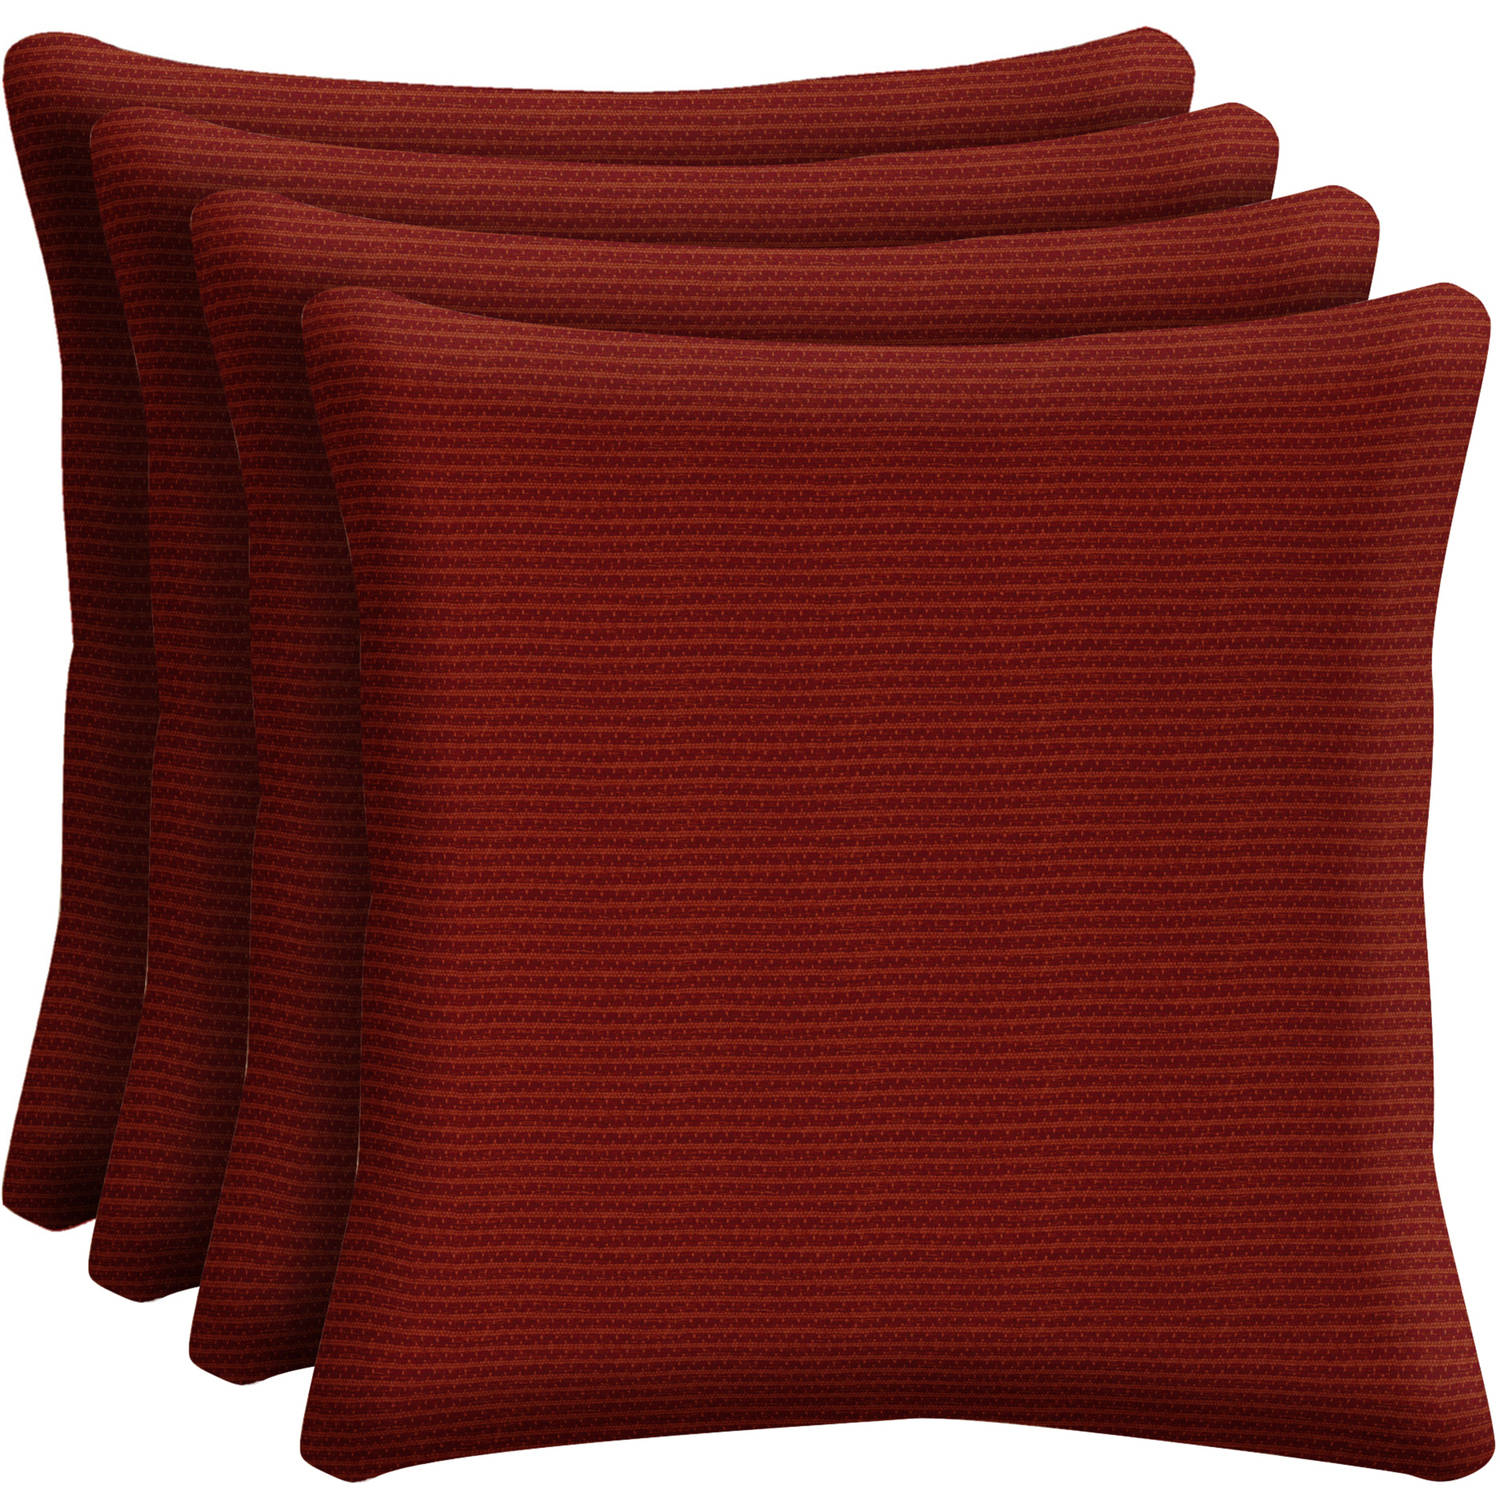 "Arden Outdoors Red Rib Woven 16"" Square Toss Pillow, Set of 4"